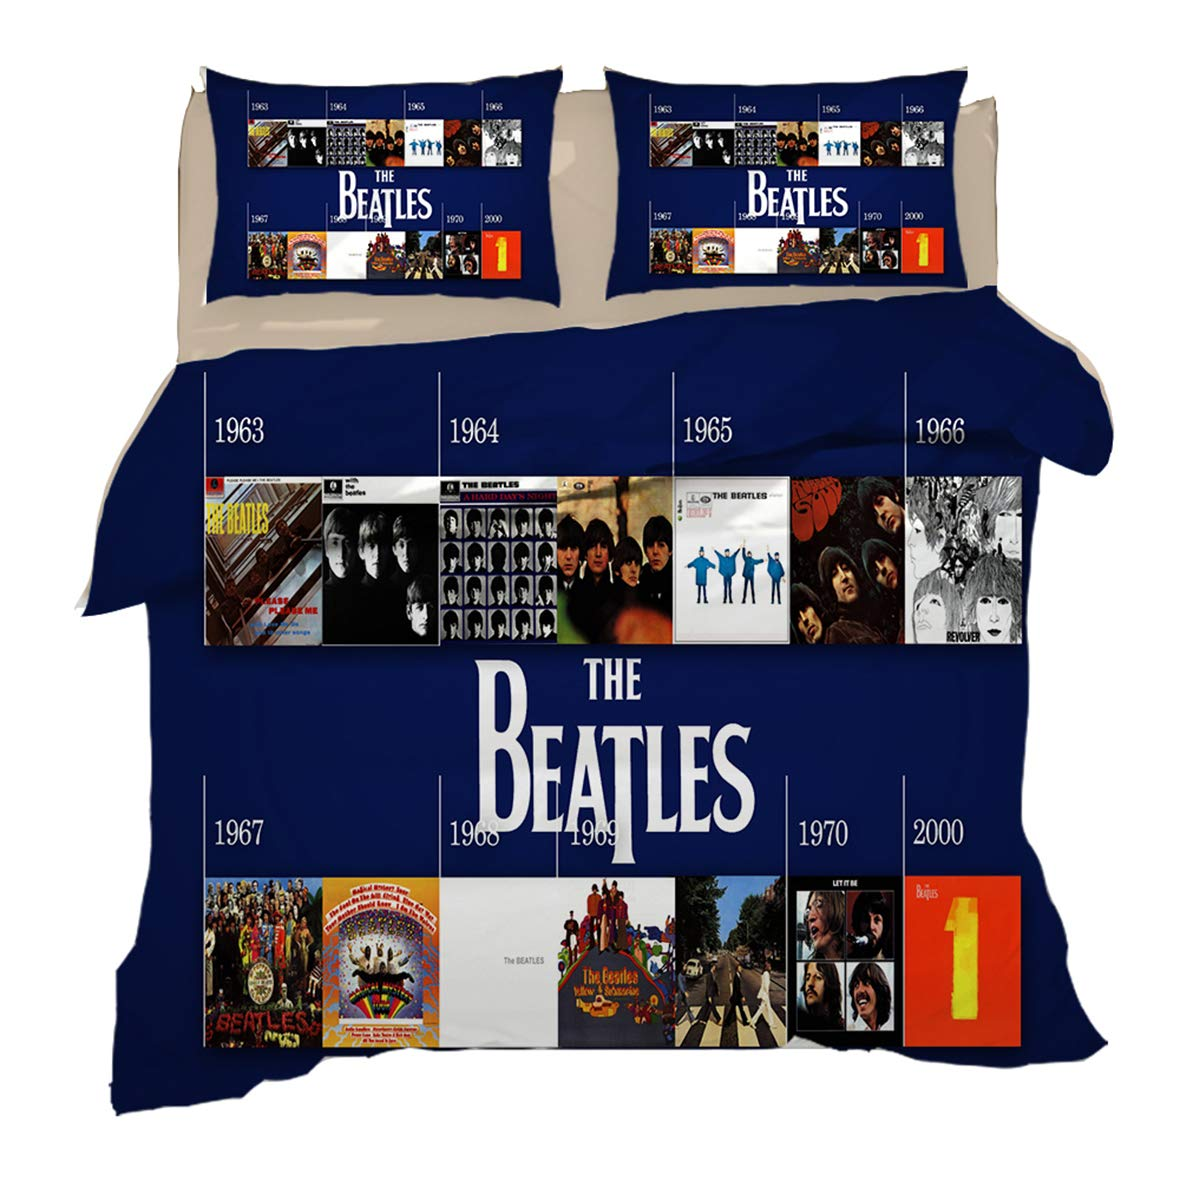 Koongso 3 Pcs The Beatles Print Duvet Cover Set - 3D The Beatles Rock Band Bedding Sets with Zipper Closure for Adults Kids(No Comforter)